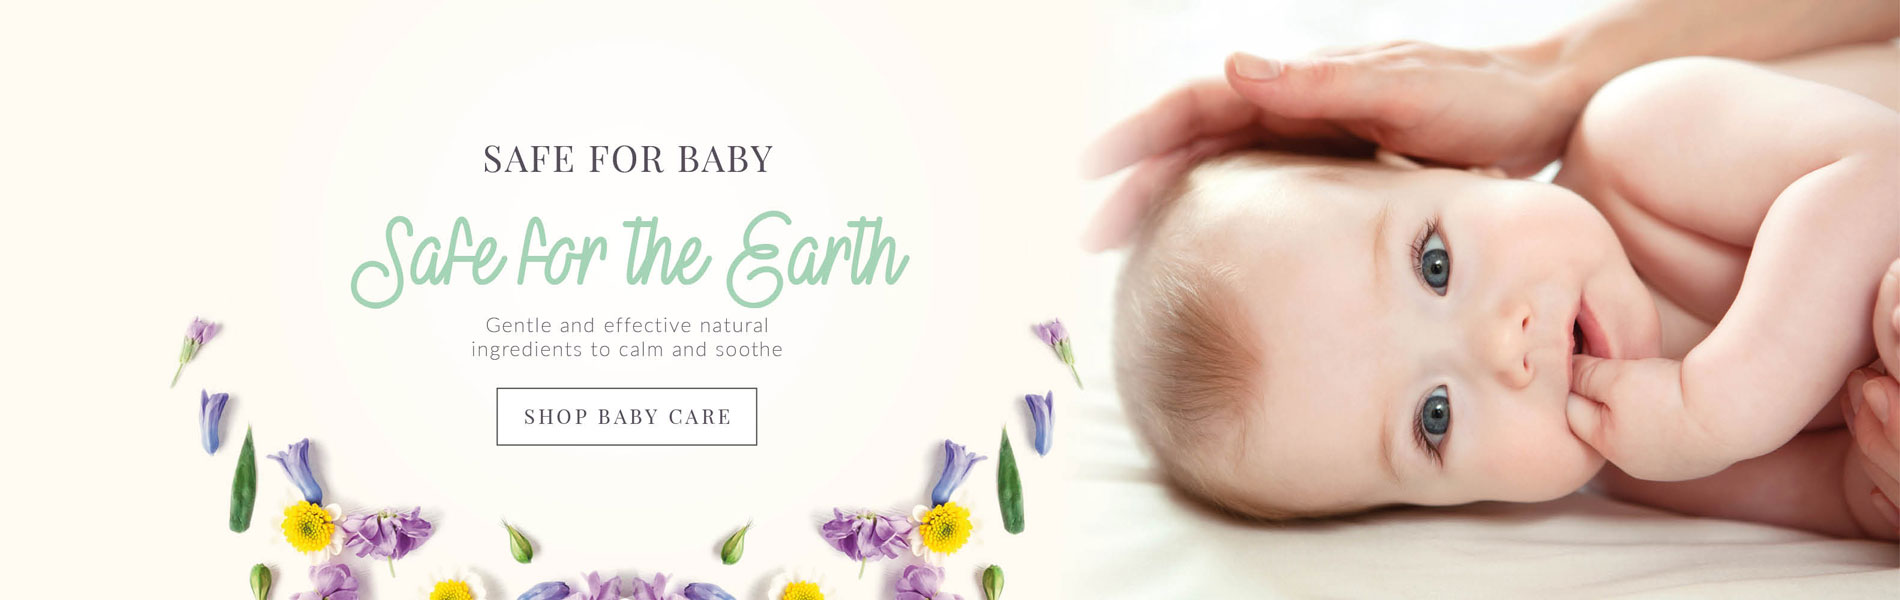 Safe For Baby Safe For Earth Gentle and effective natural ingredients to calm and soothe